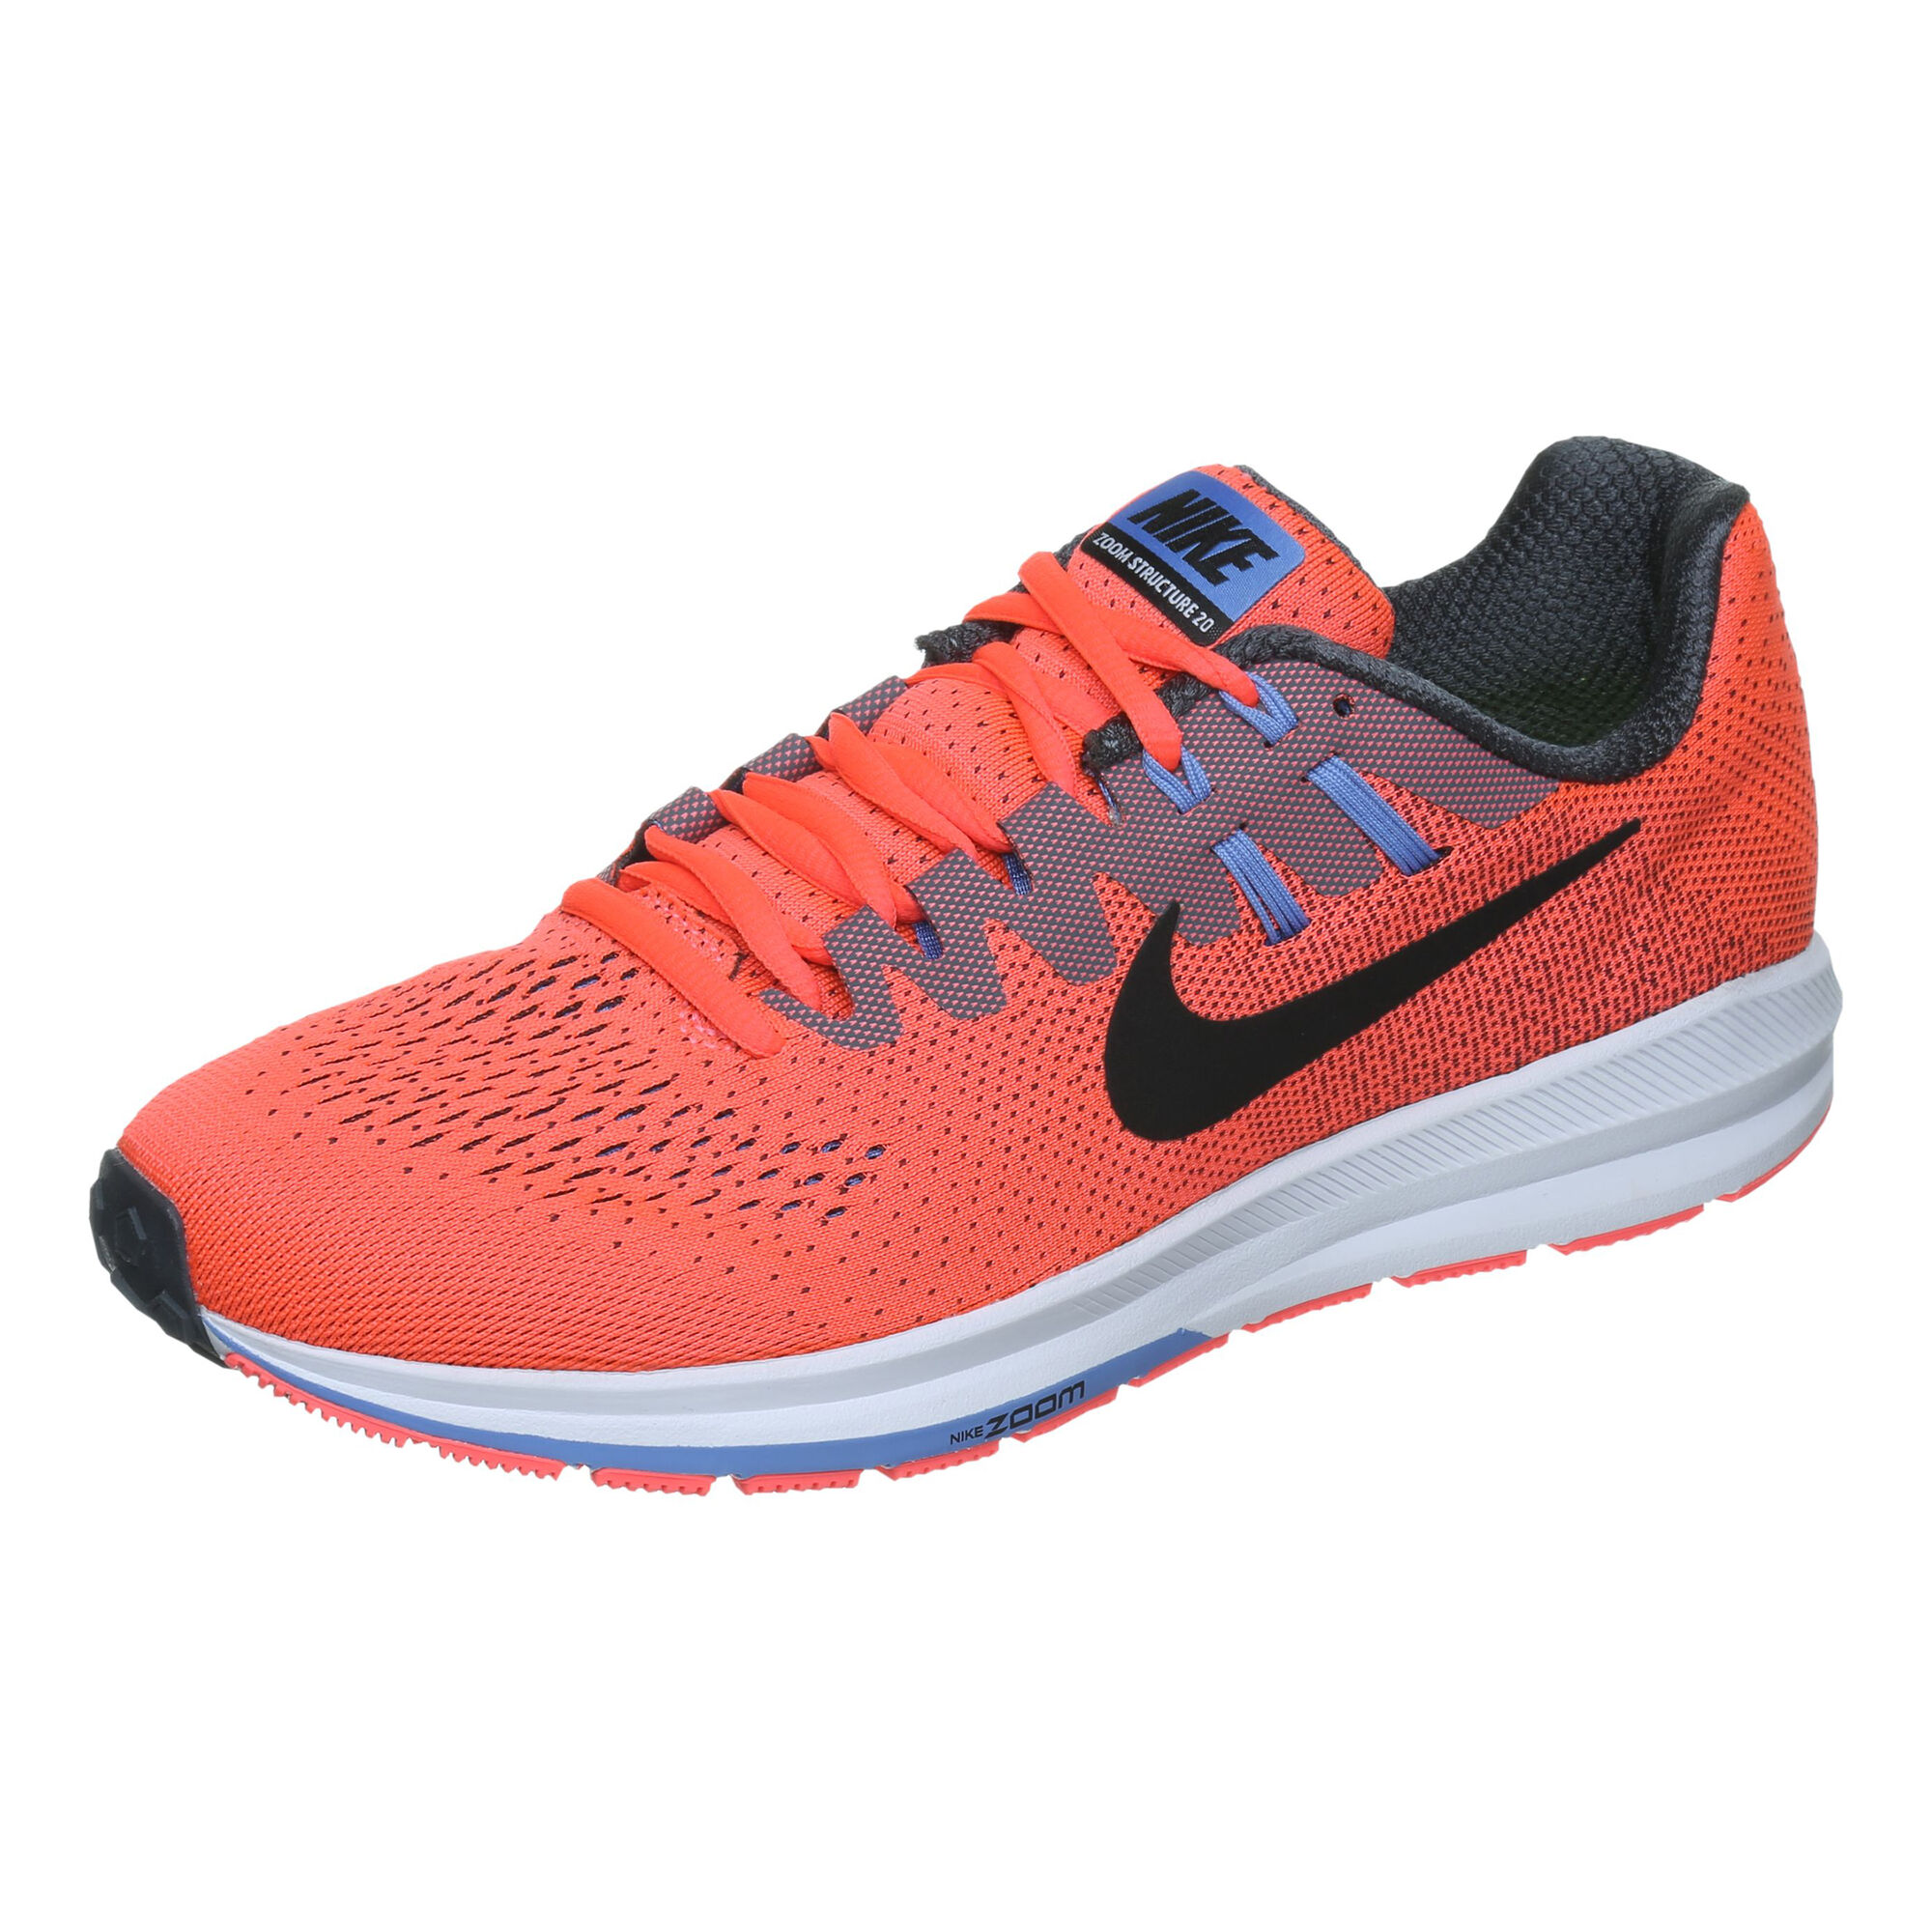 size 40 1757b b15ce buy Nike Air Zoom Structure 20 Stability Running Shoe Women ...